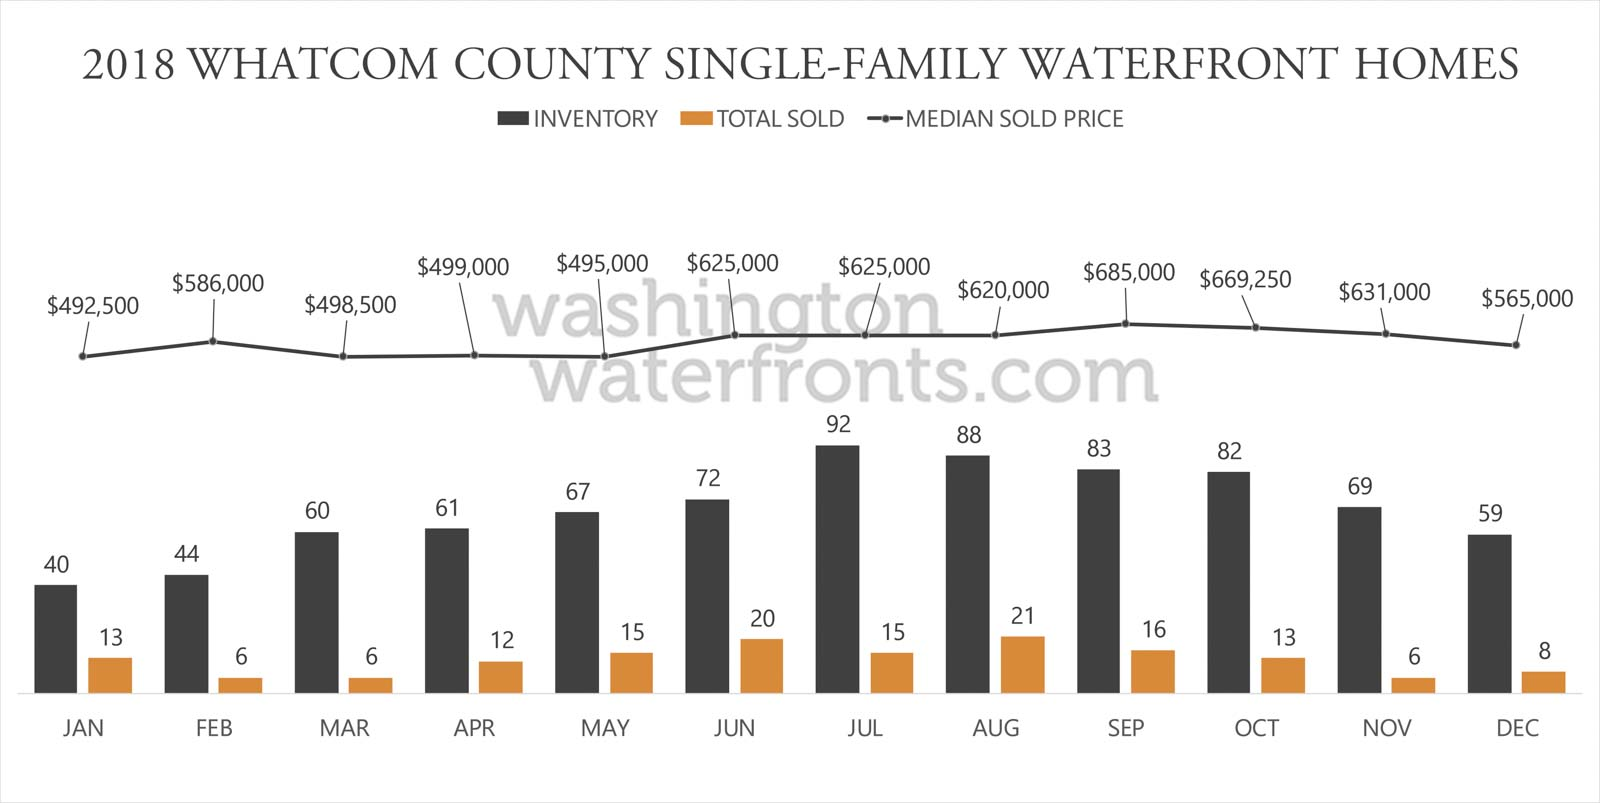 Whatcom County Waterfront Inventory